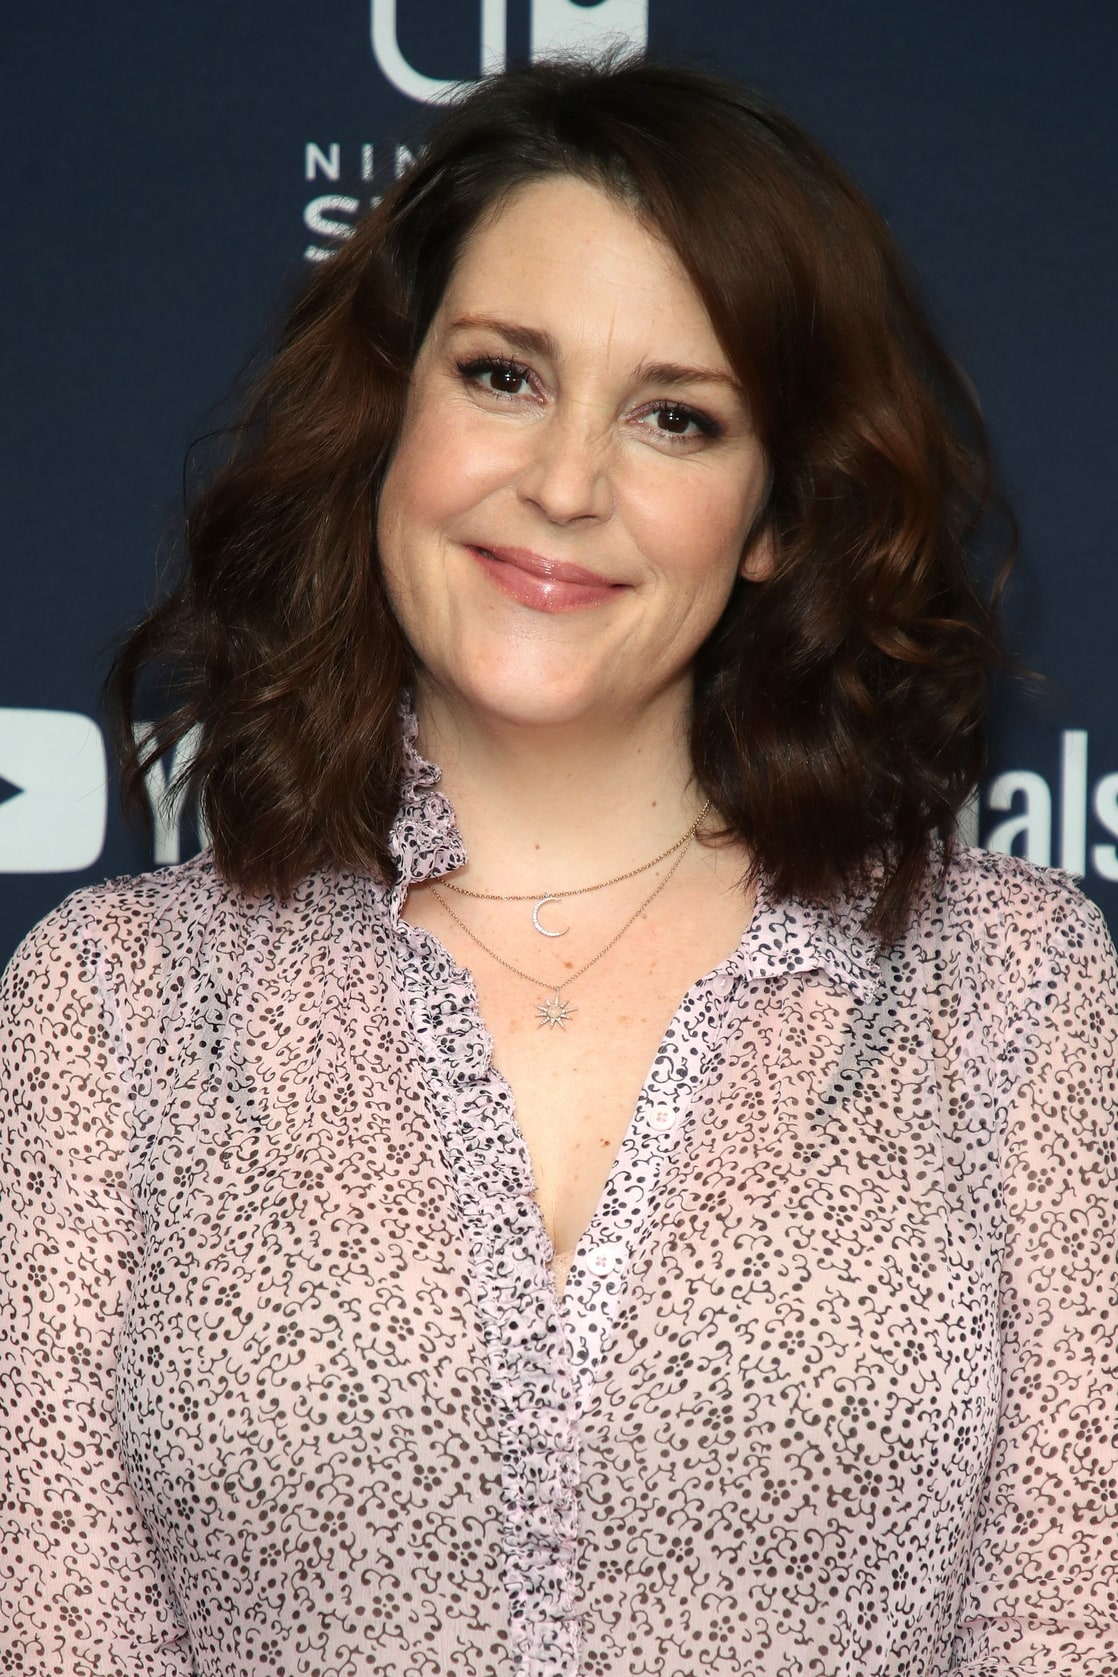 Sexy Melanie Lynskey naked (51 foto and video), Ass, Cleavage, Feet, underwear 2020